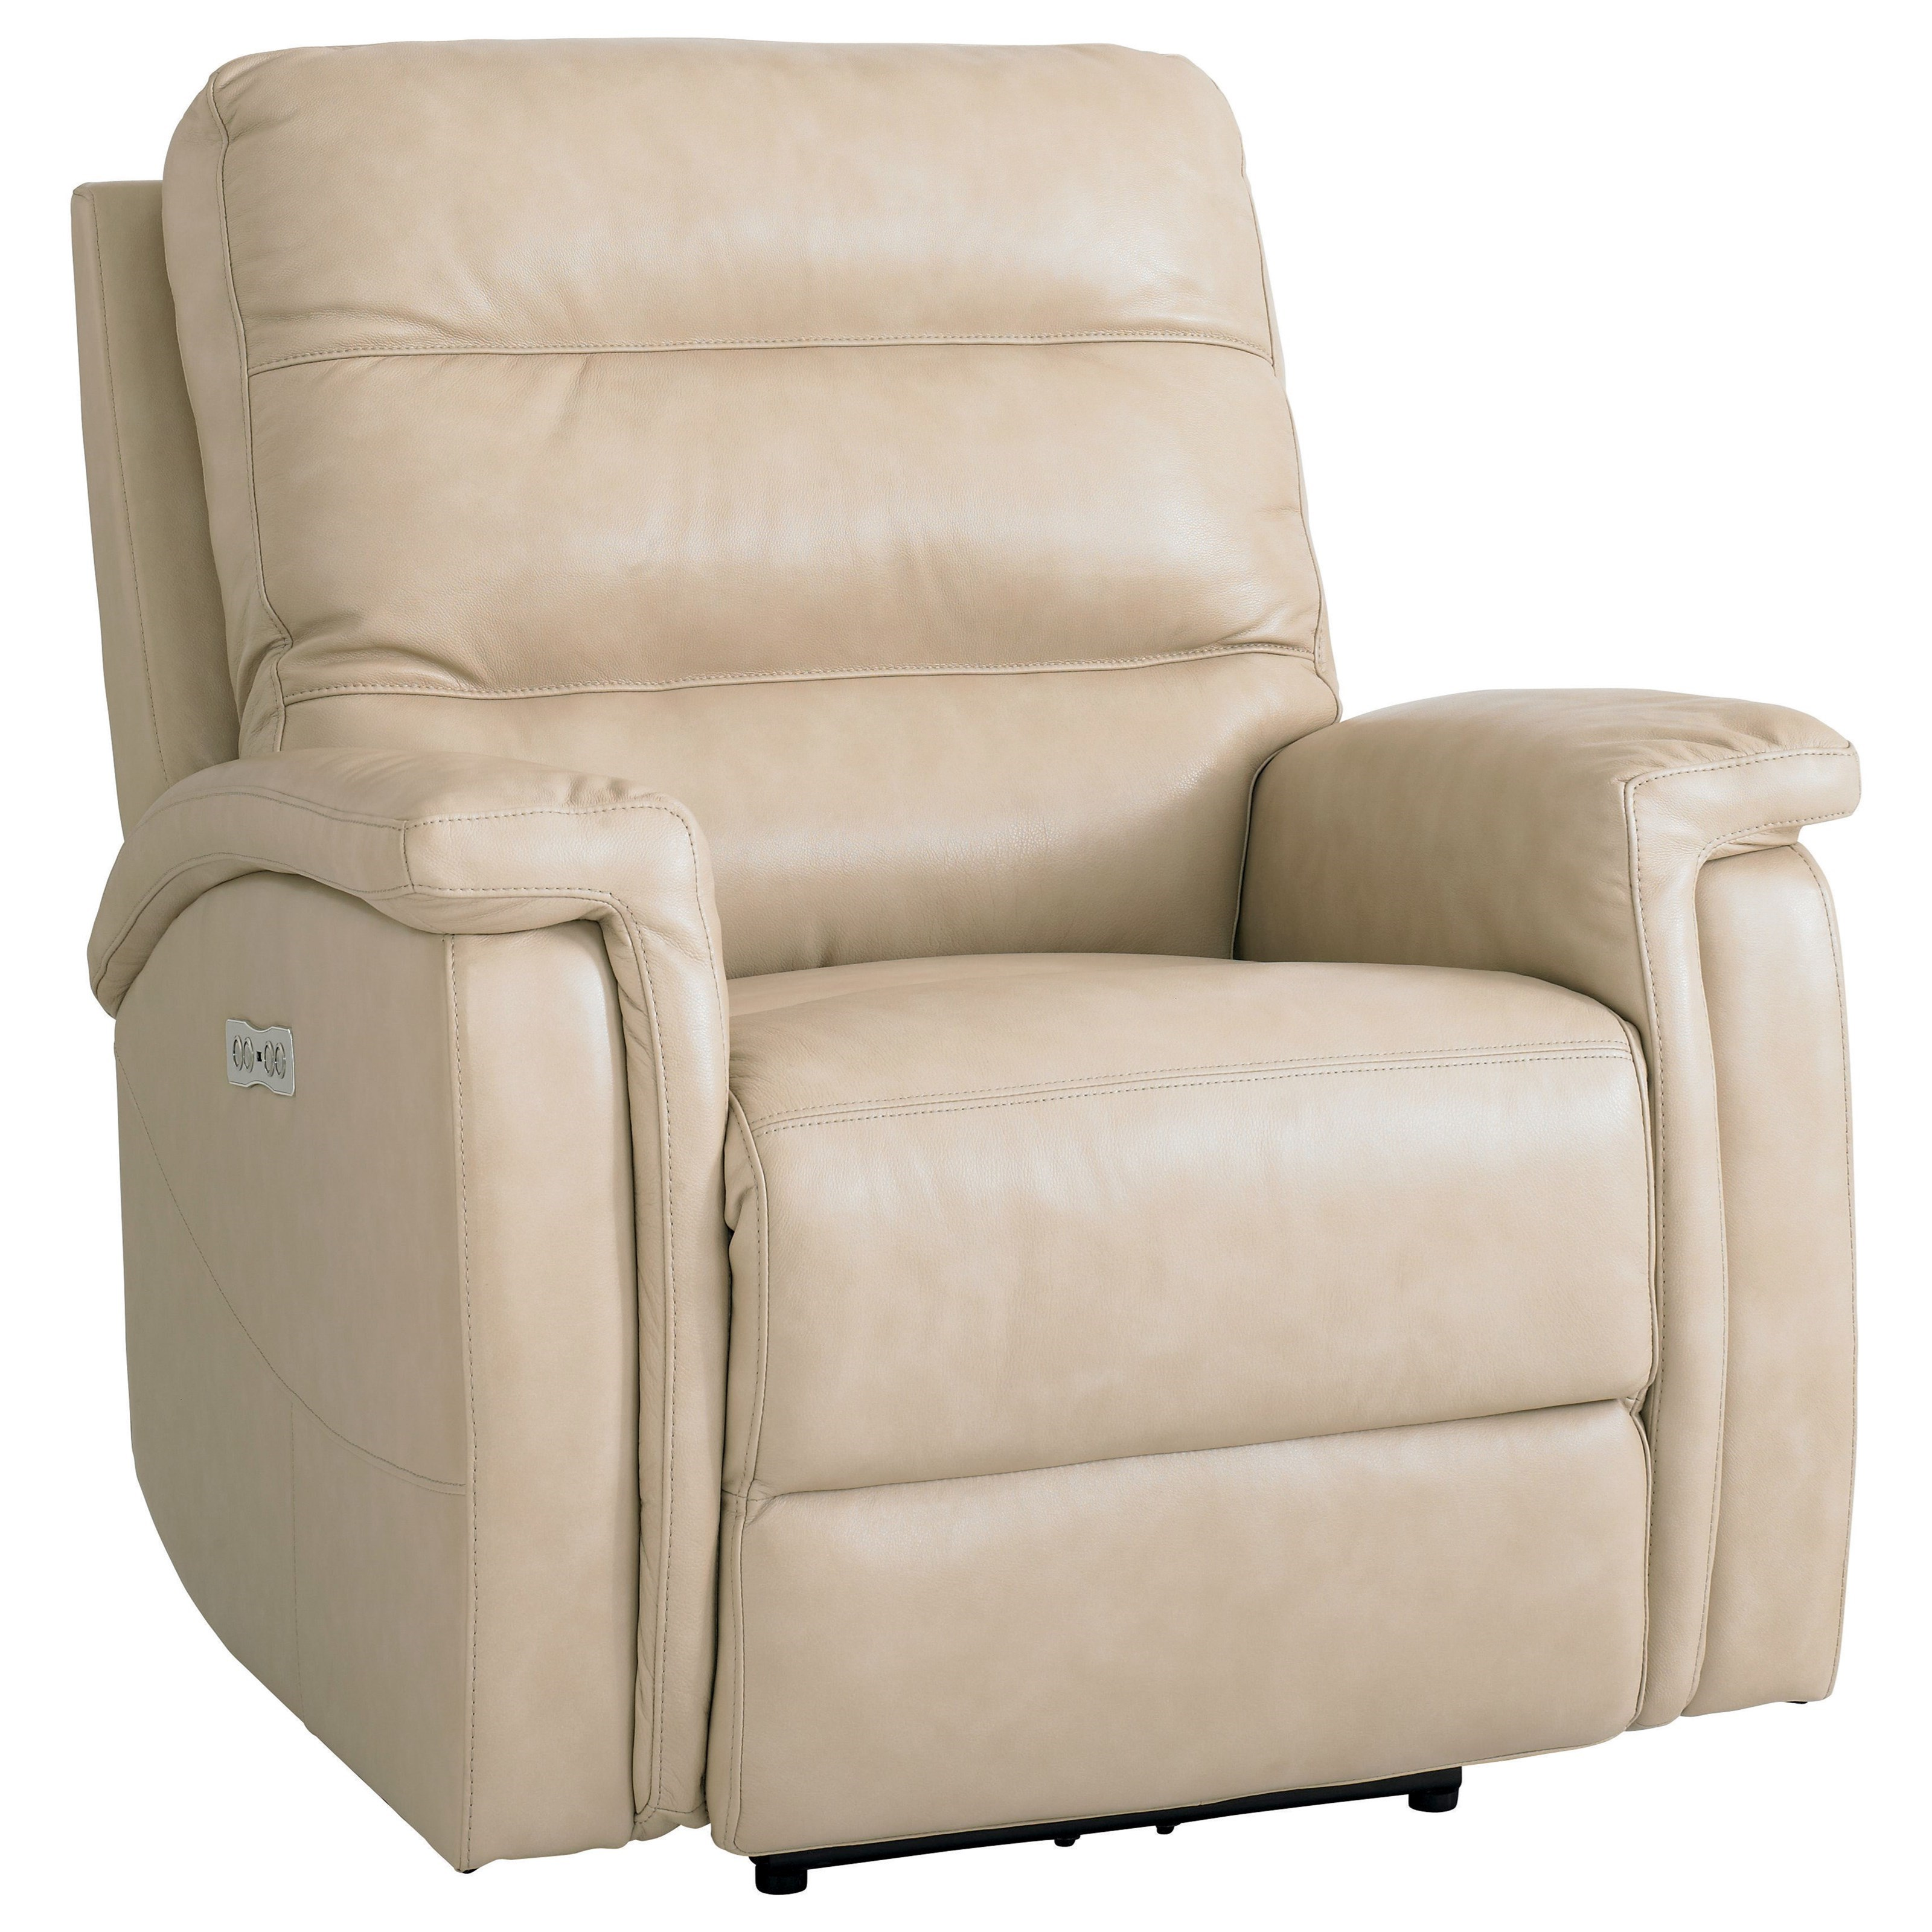 Regency - Club Level Motion Recliner with Power Adjustable HR by Bassett at Bassett of Cool Springs